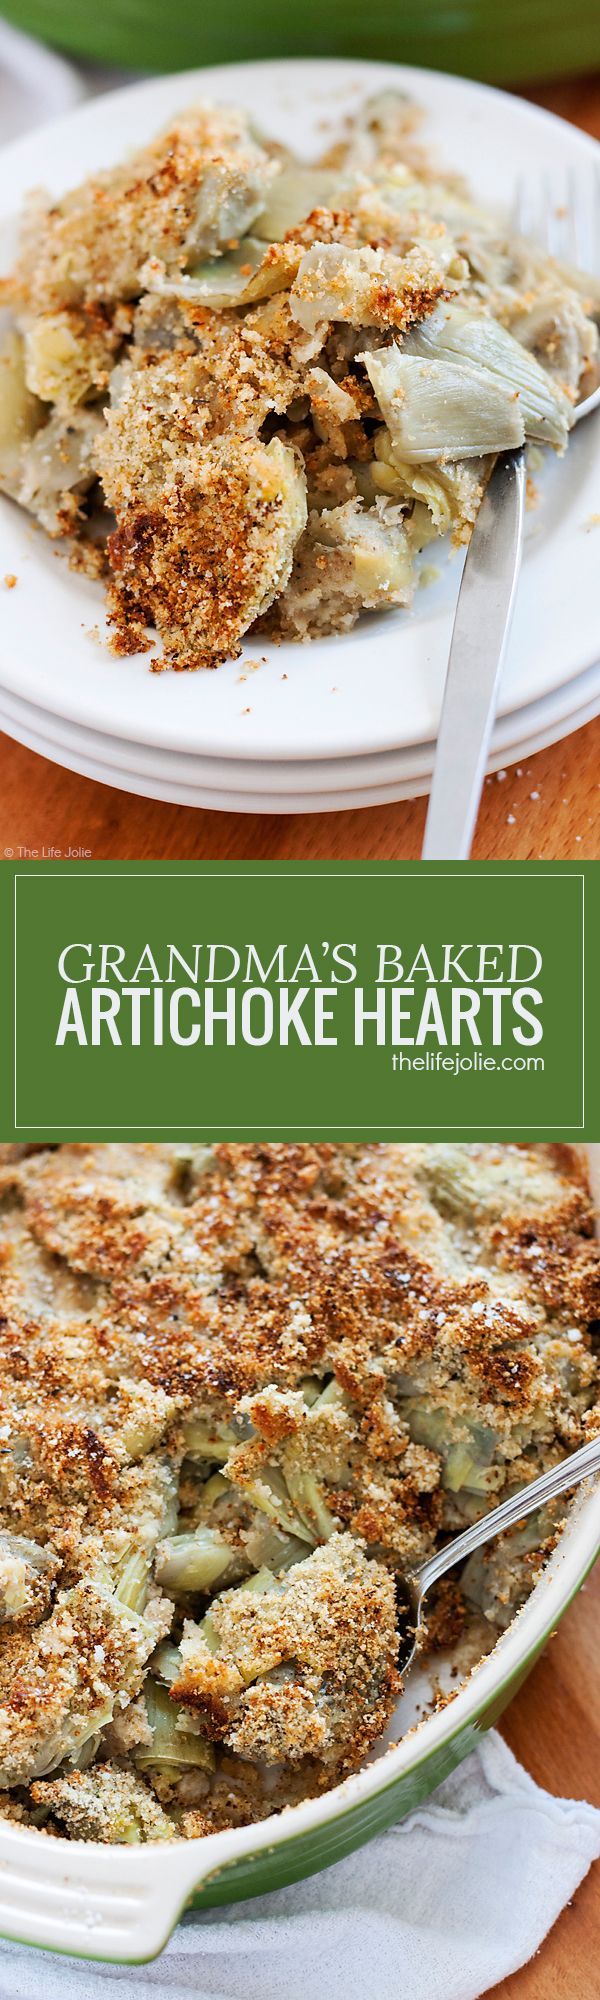 Grandma's Baked Artichoke Hearts is one of my favorite holiday side dishes. This is such an easy recipe and can even be made ahead of time. This is made with Parmesan cheese, bread crumbs and garlic powder and is a delicious addition to your Thanksgiving or Christmas dinner!